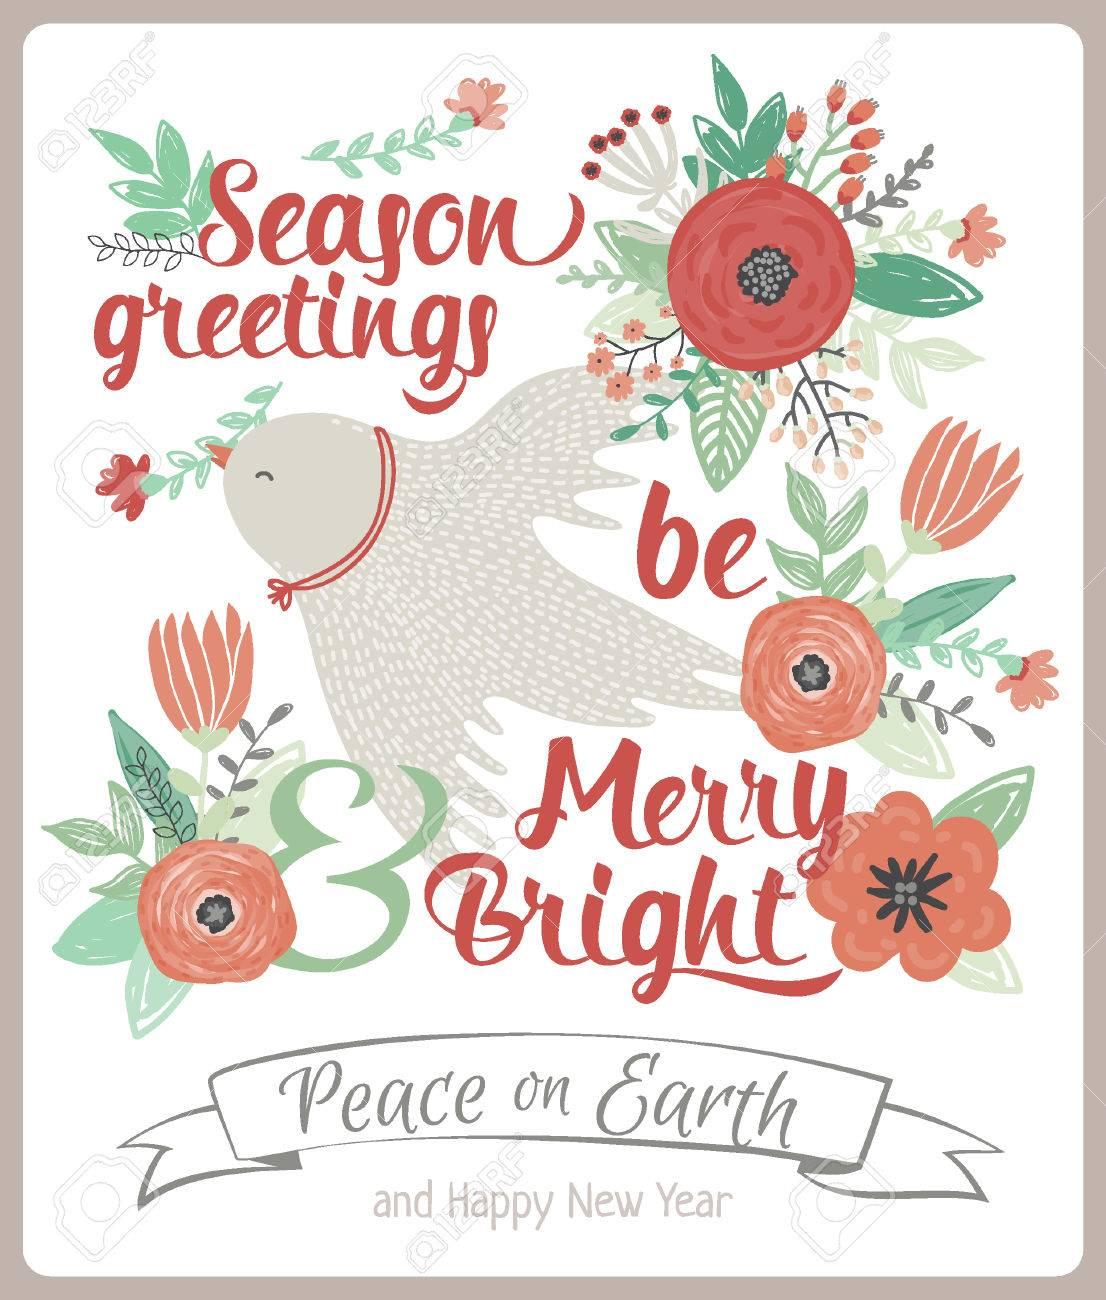 vector vintage merry christmas and happy new year card with flowers and winter dove greeting stylish illustration of winter romantic bouquet of flowers